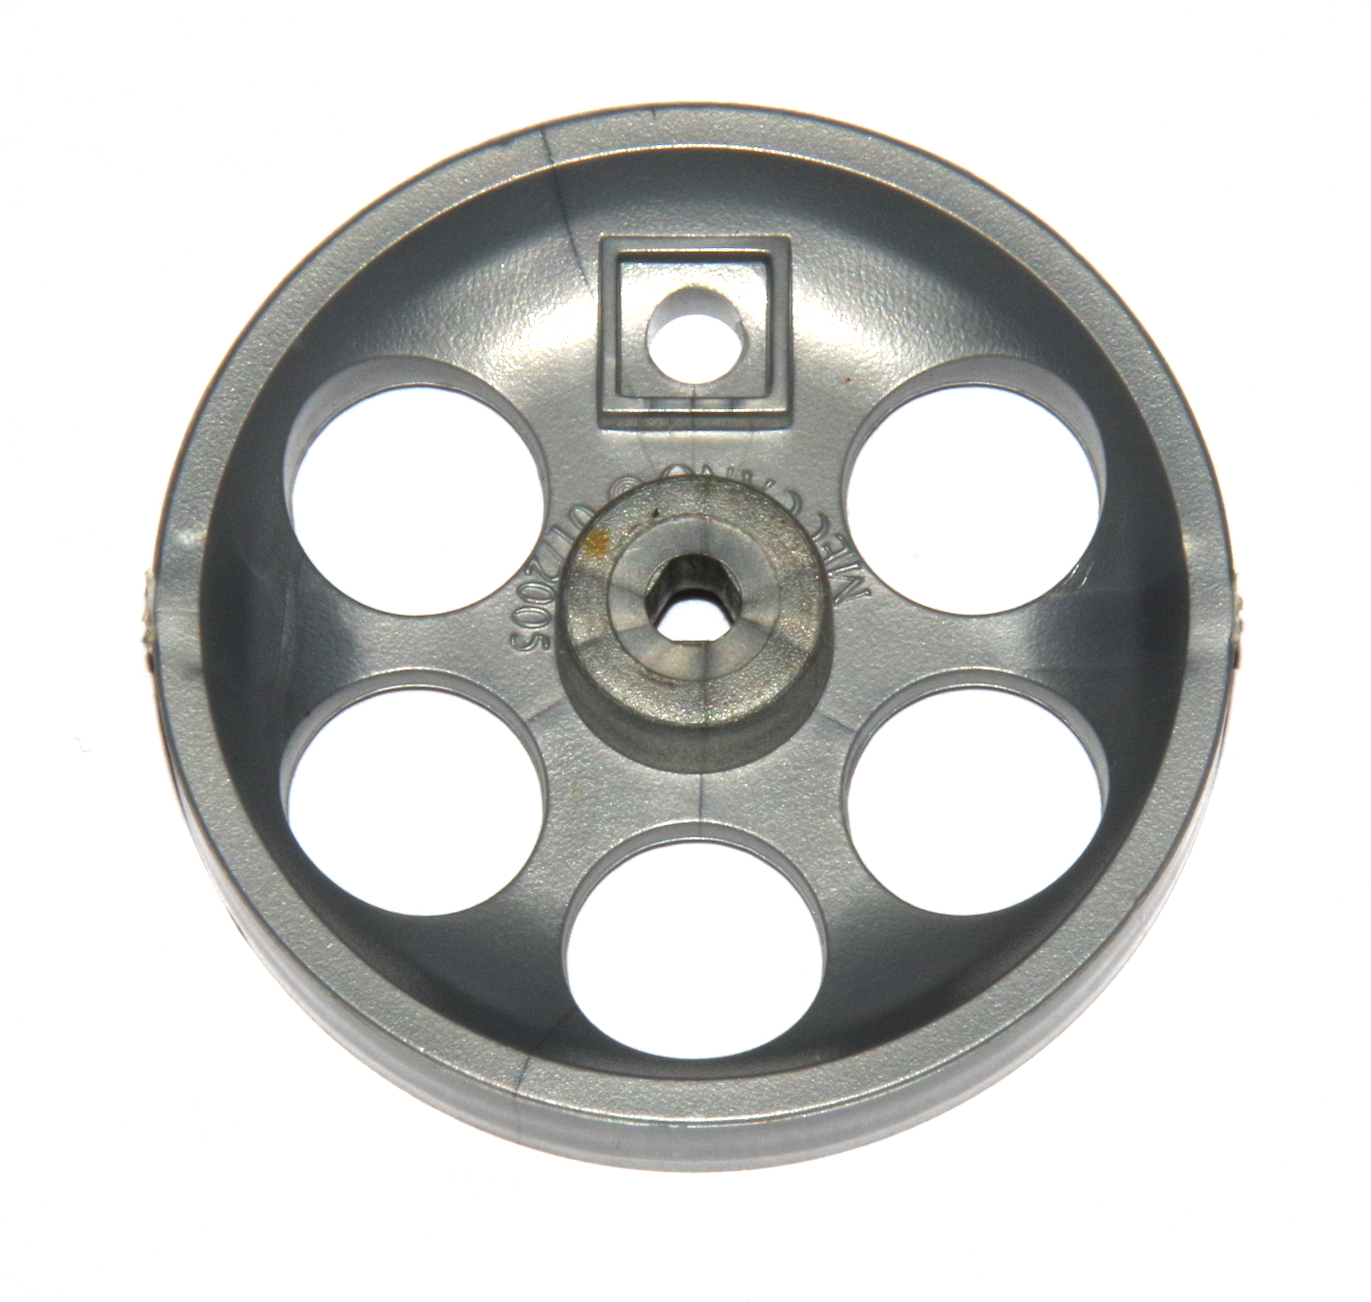 B452 Locomotive Wheel 2'' Silver Plastic Triflat Original